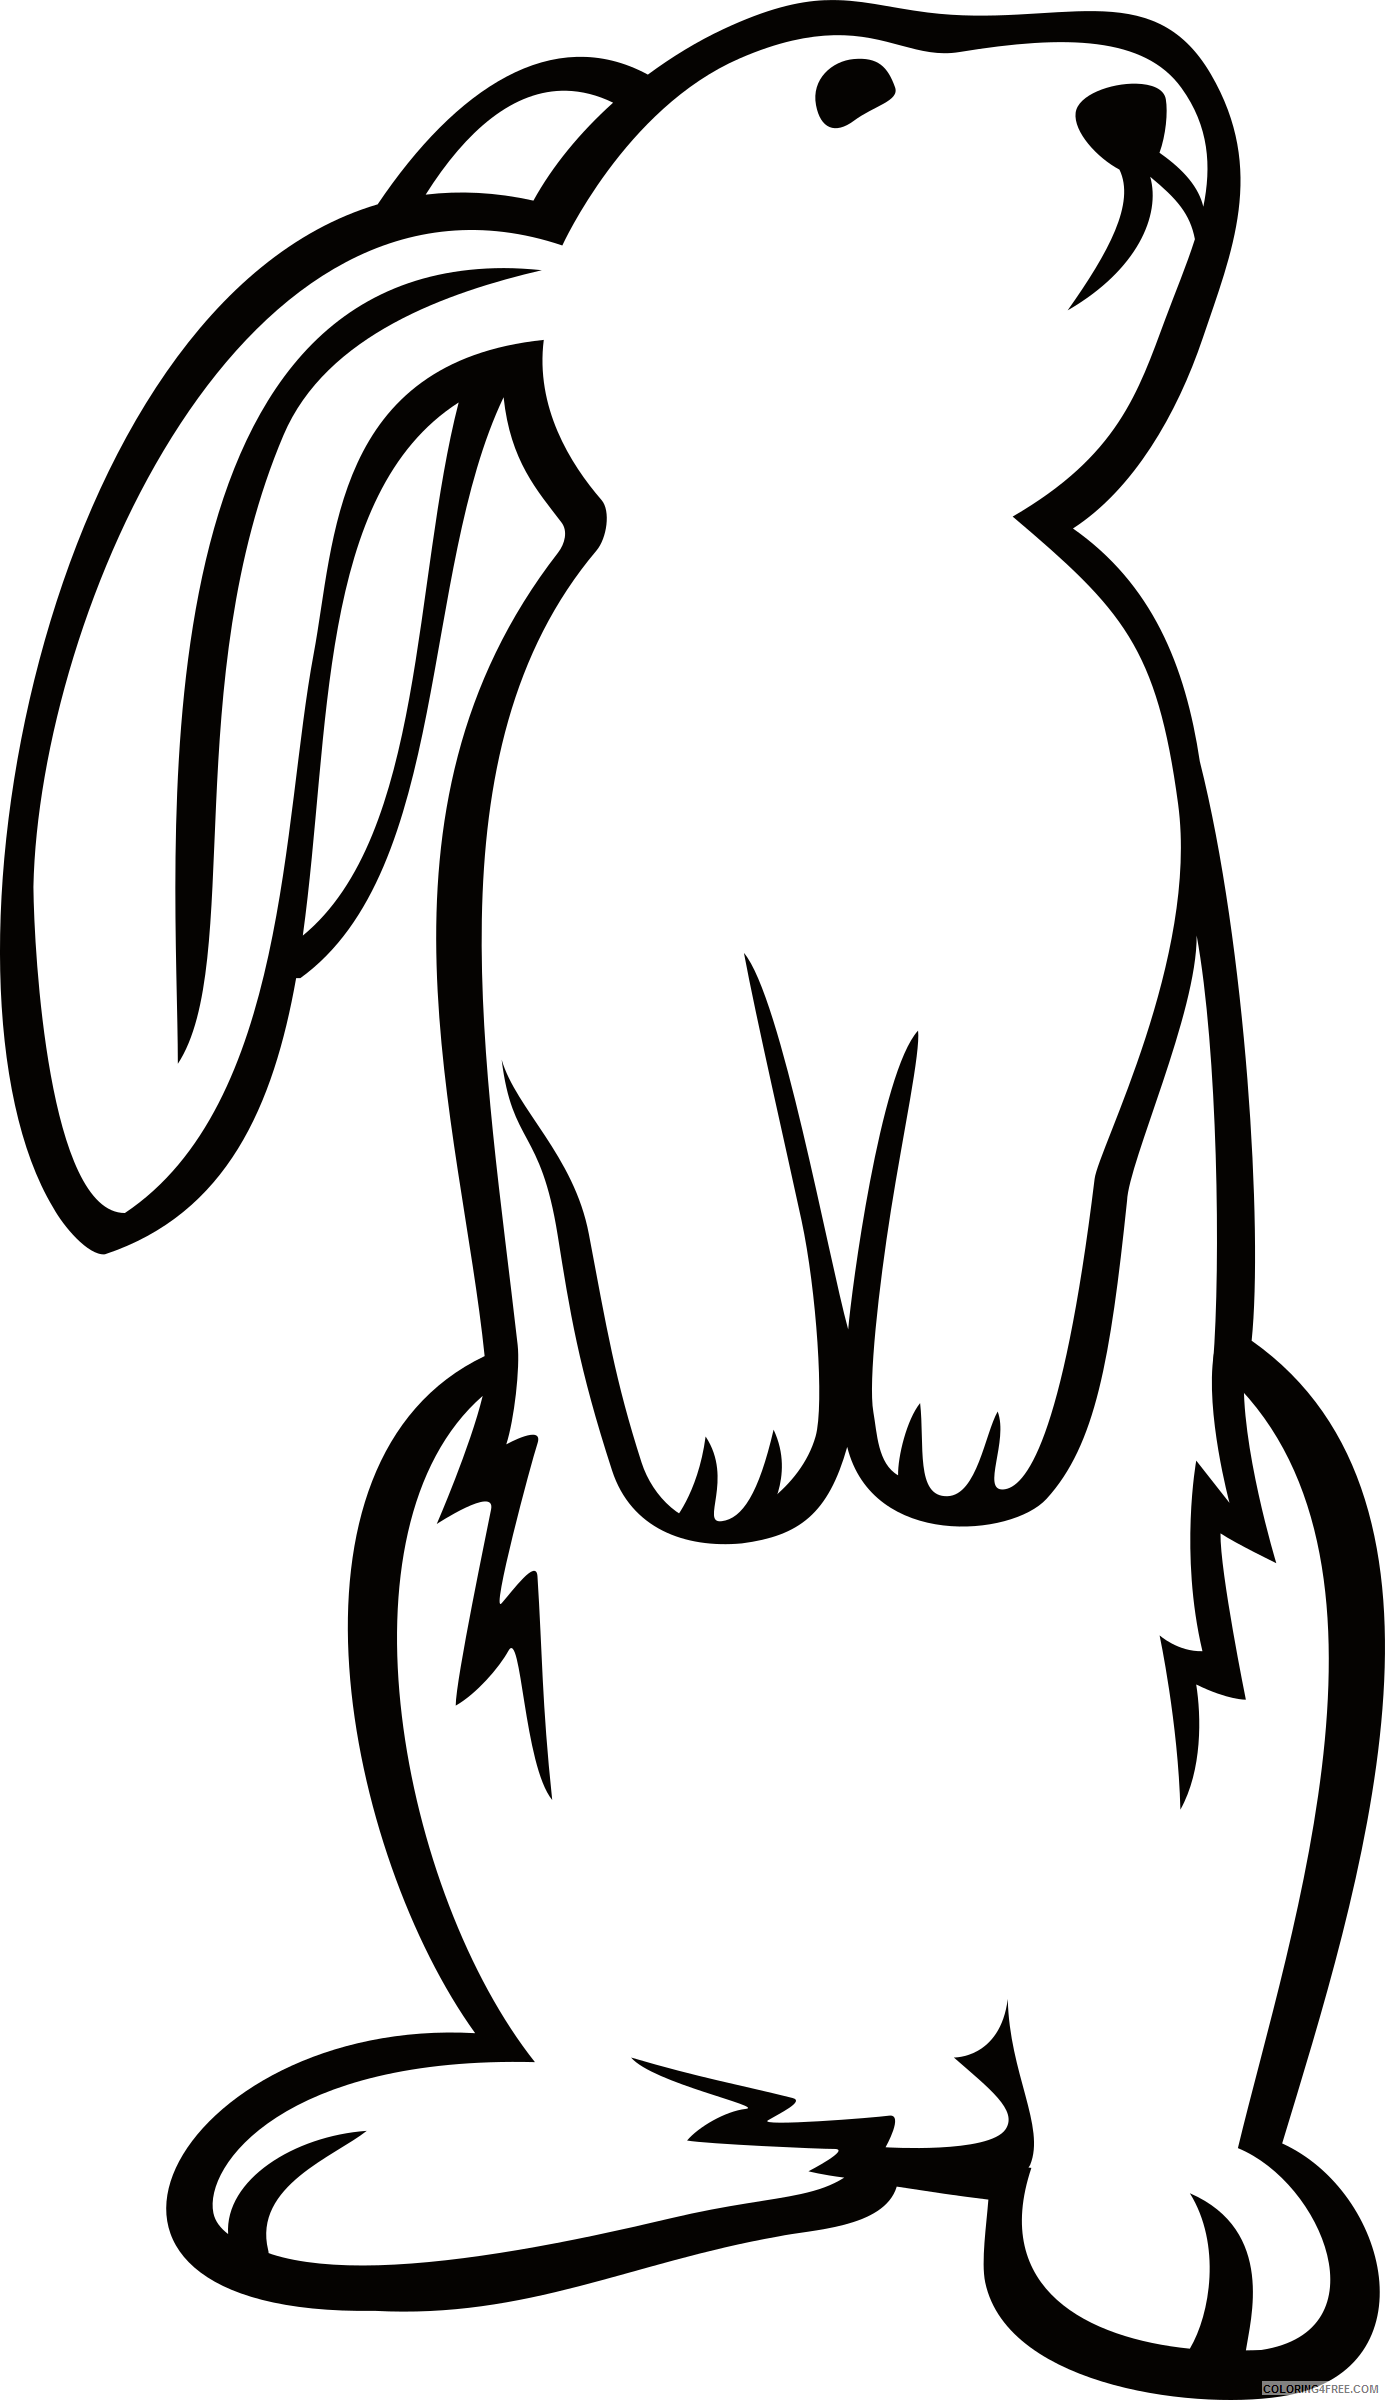 Bunny Outline Coloring Pages bunny 2 2 bpng Printable Coloring4free